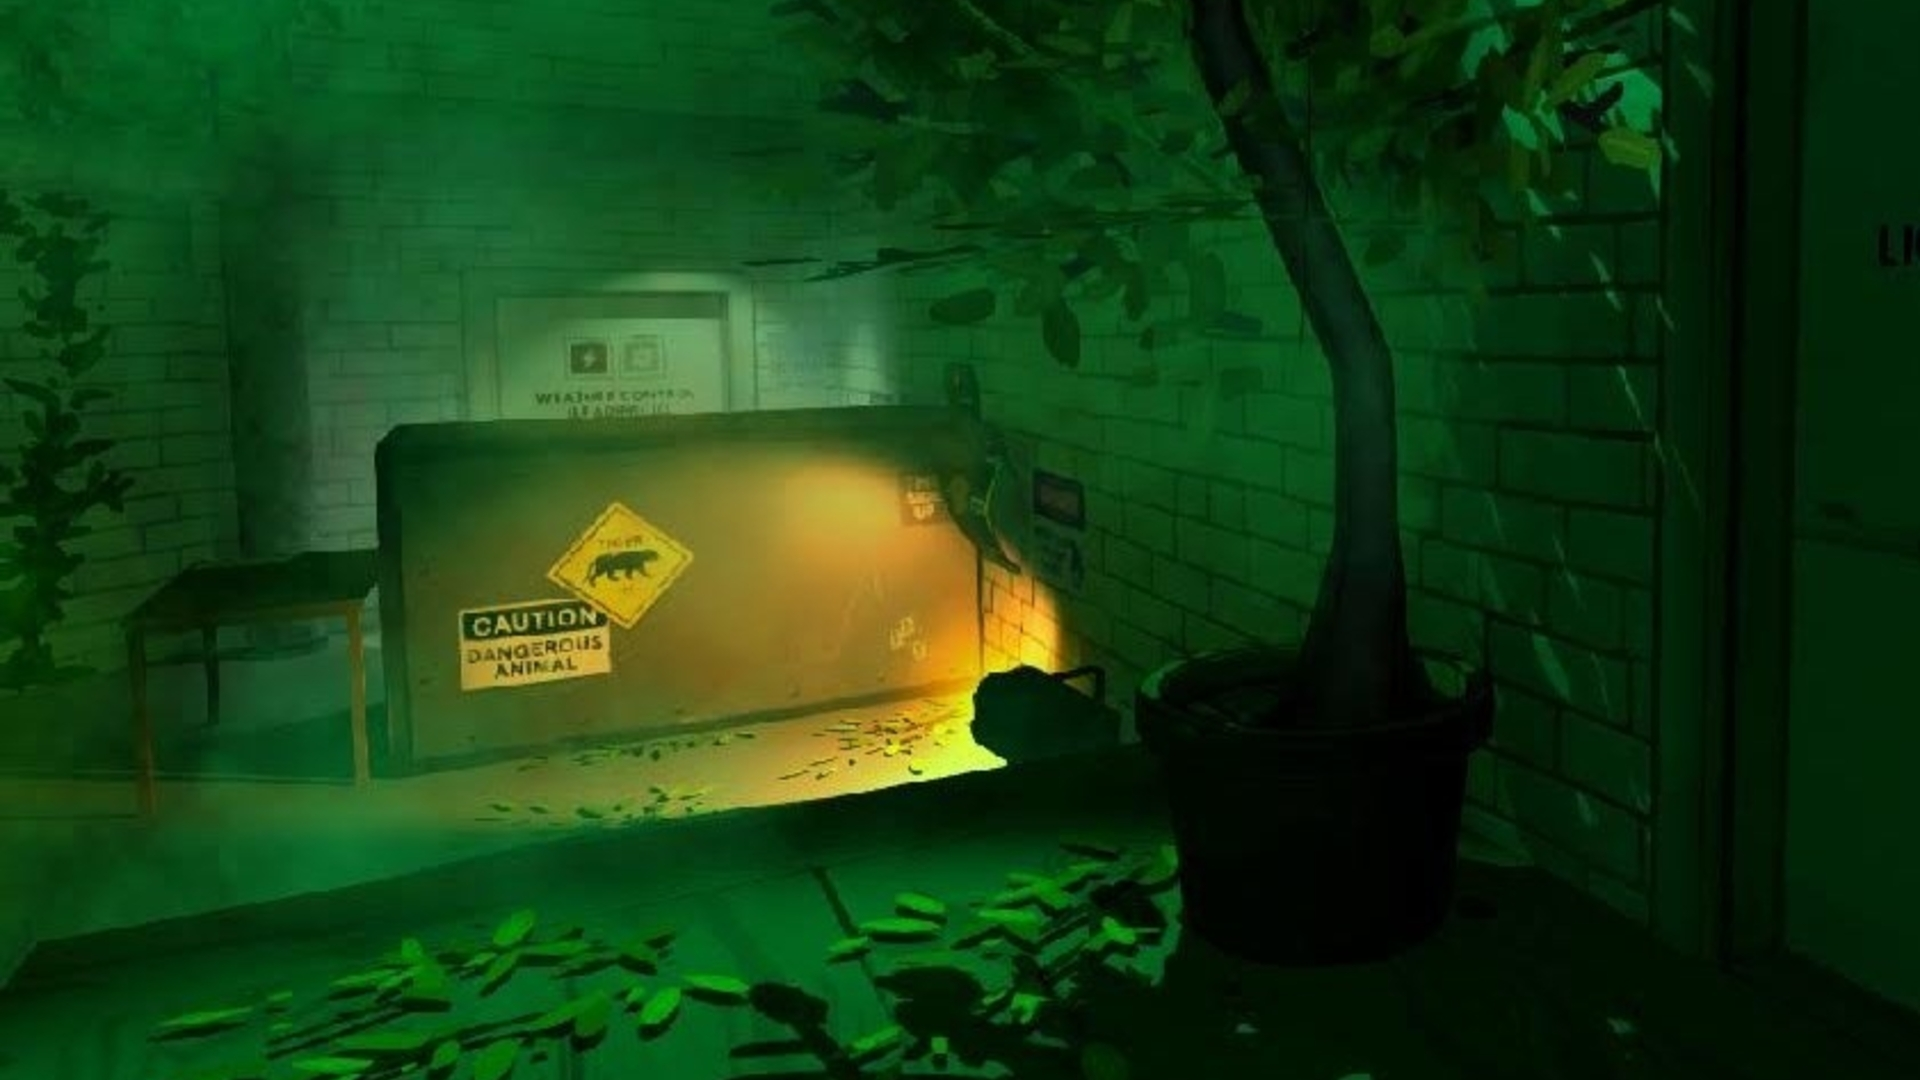 The Stanley Parable designer teases new game